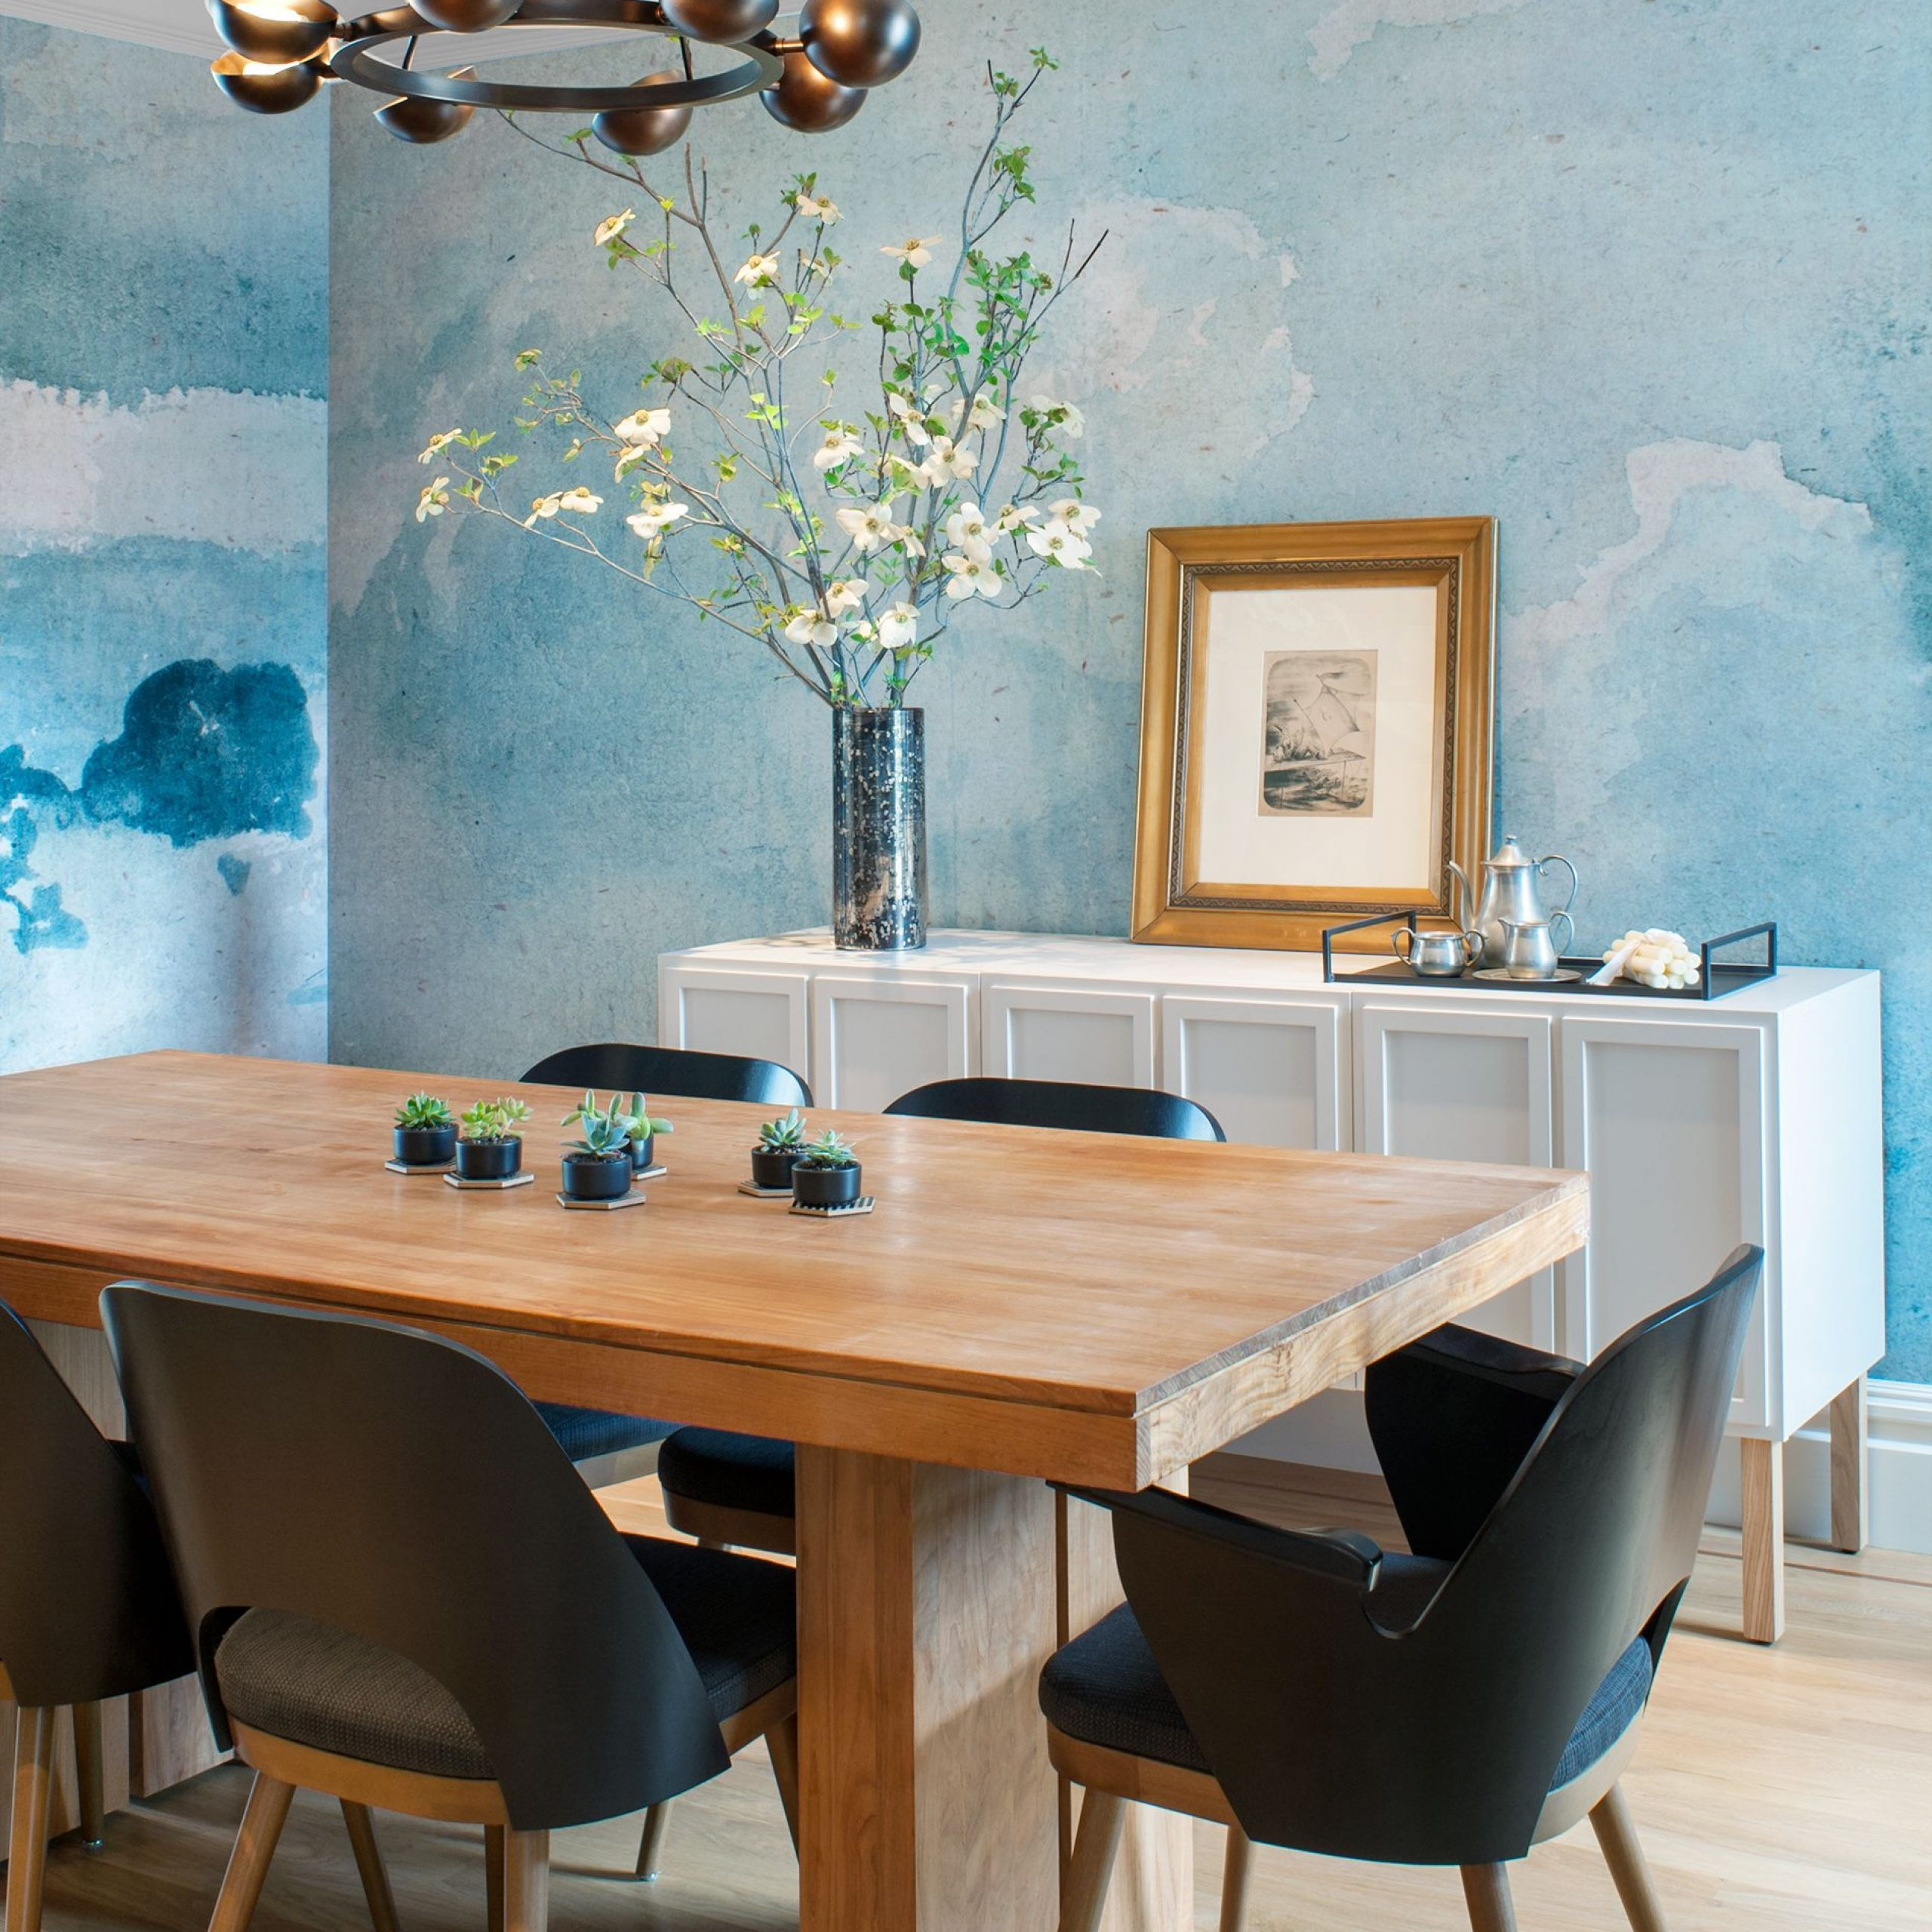 18 Dining Room Wallpaper Ideas That'll Elevate All Your With Recent Hearst Oak Wood Dining Tables (Image 1 of 25)